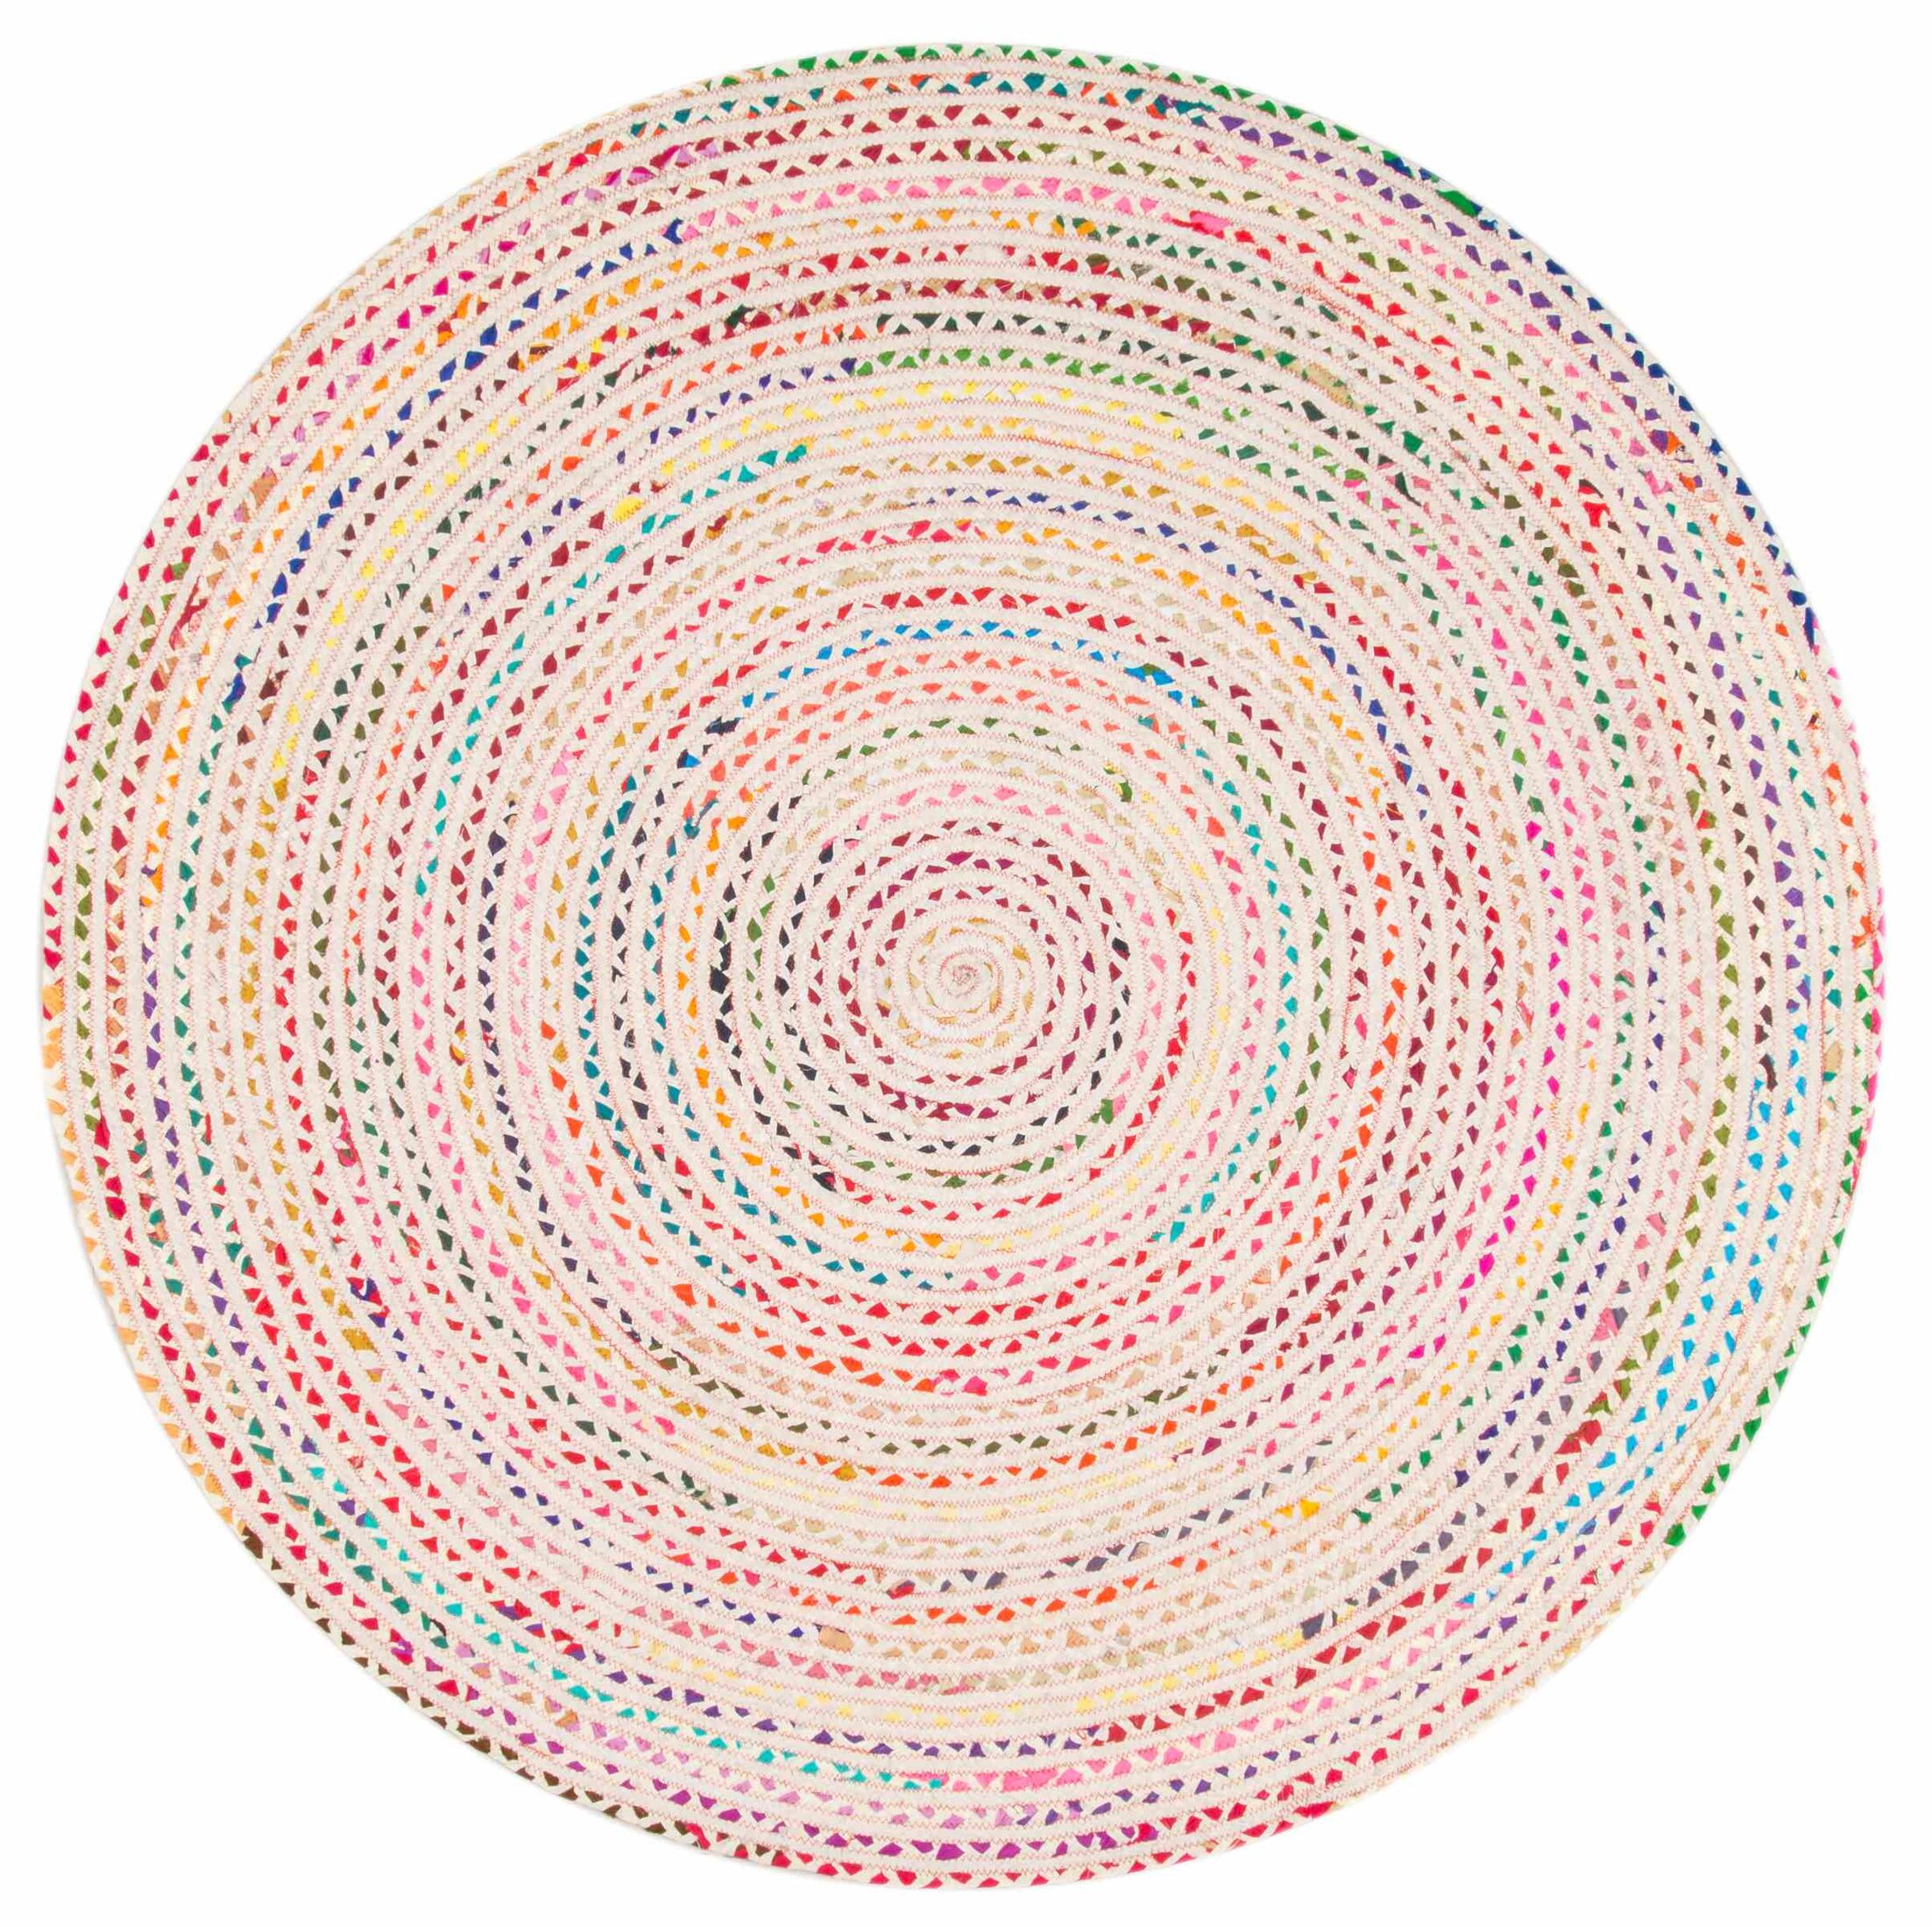 Ponder Hand-Braided Ivory Area Rug Rug Size: Round 8'